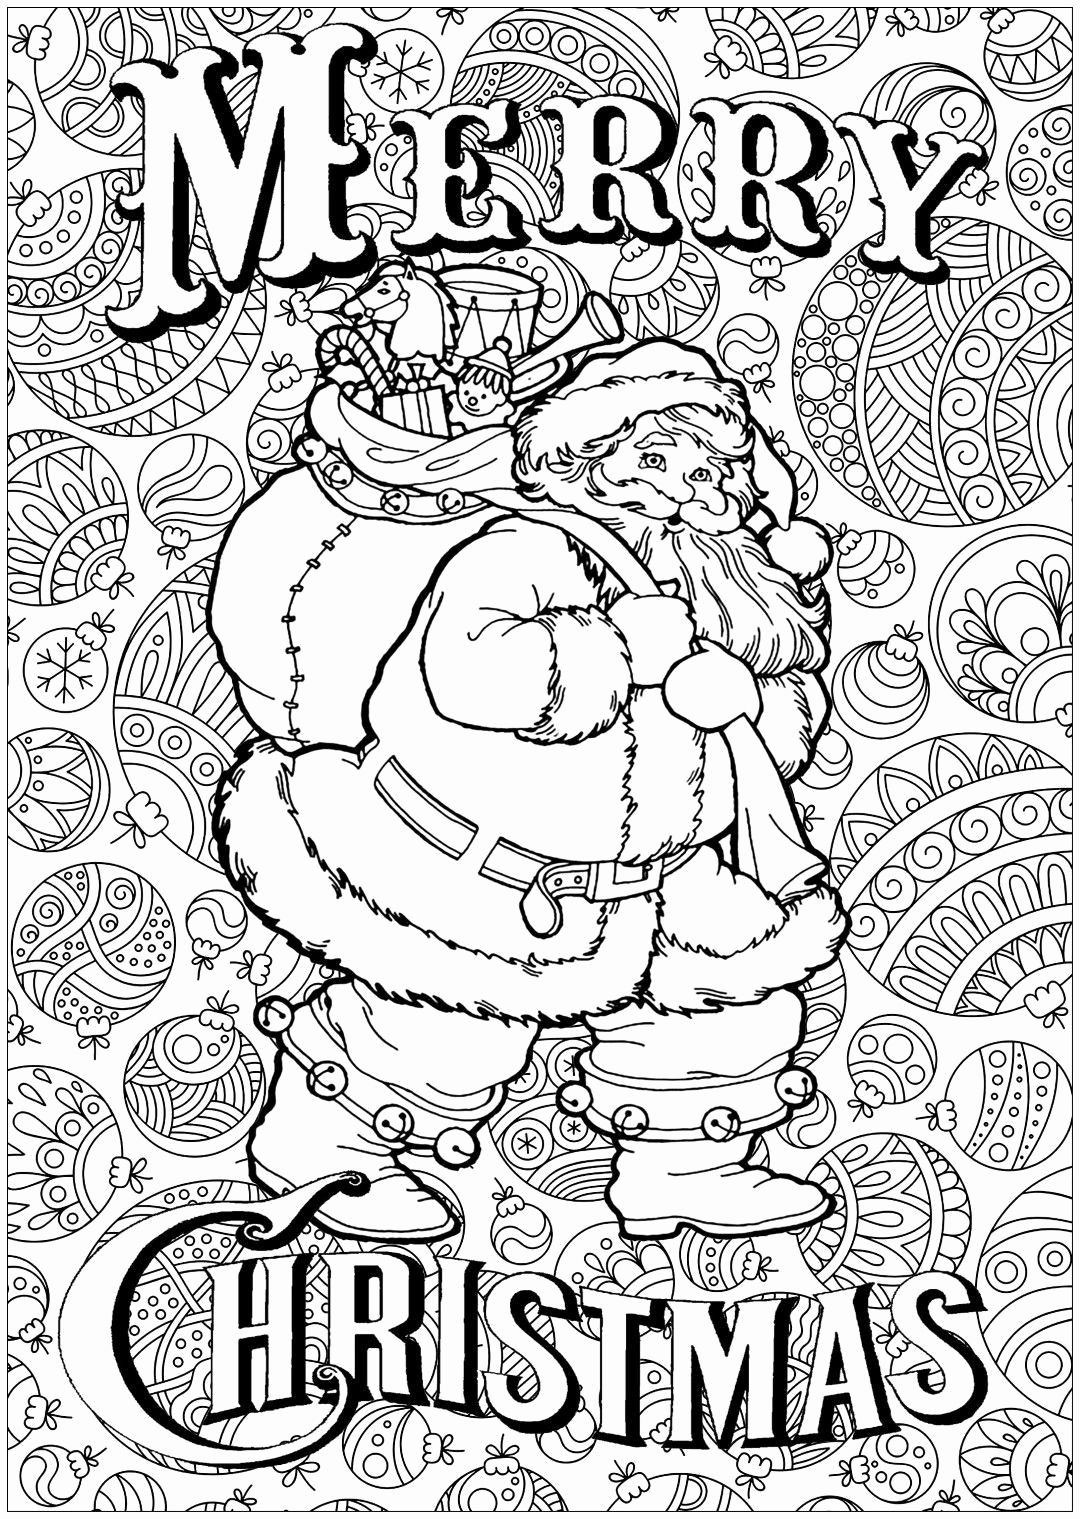 Christmas Coloring Pages Online Luxury Christmas Coloring Pages For Adul Santa Coloring Pages Merry Christmas Coloring Pages Printable Christmas Coloring Pages